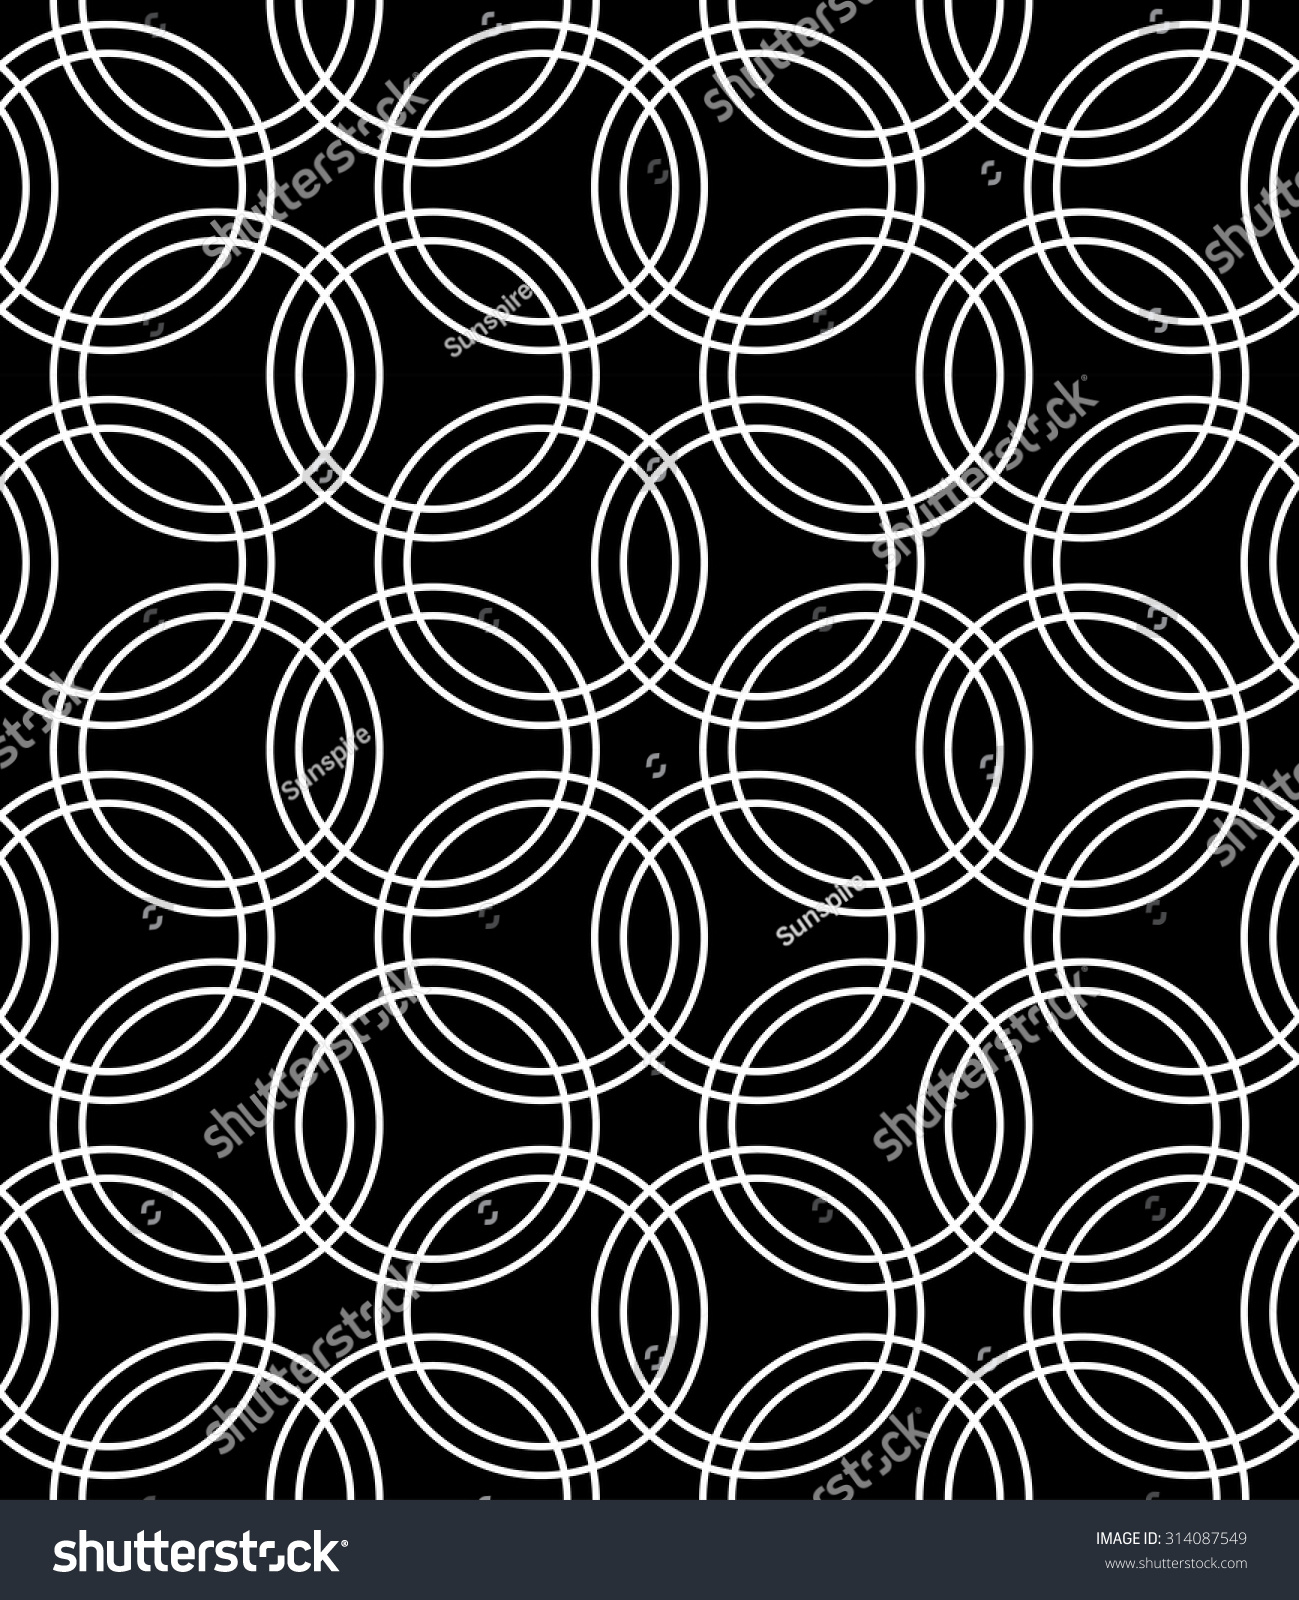 Black bed sheet texture - Vector Modern Seamless Pattern Flowers Black And White Textile Print Stylish Background Abstract